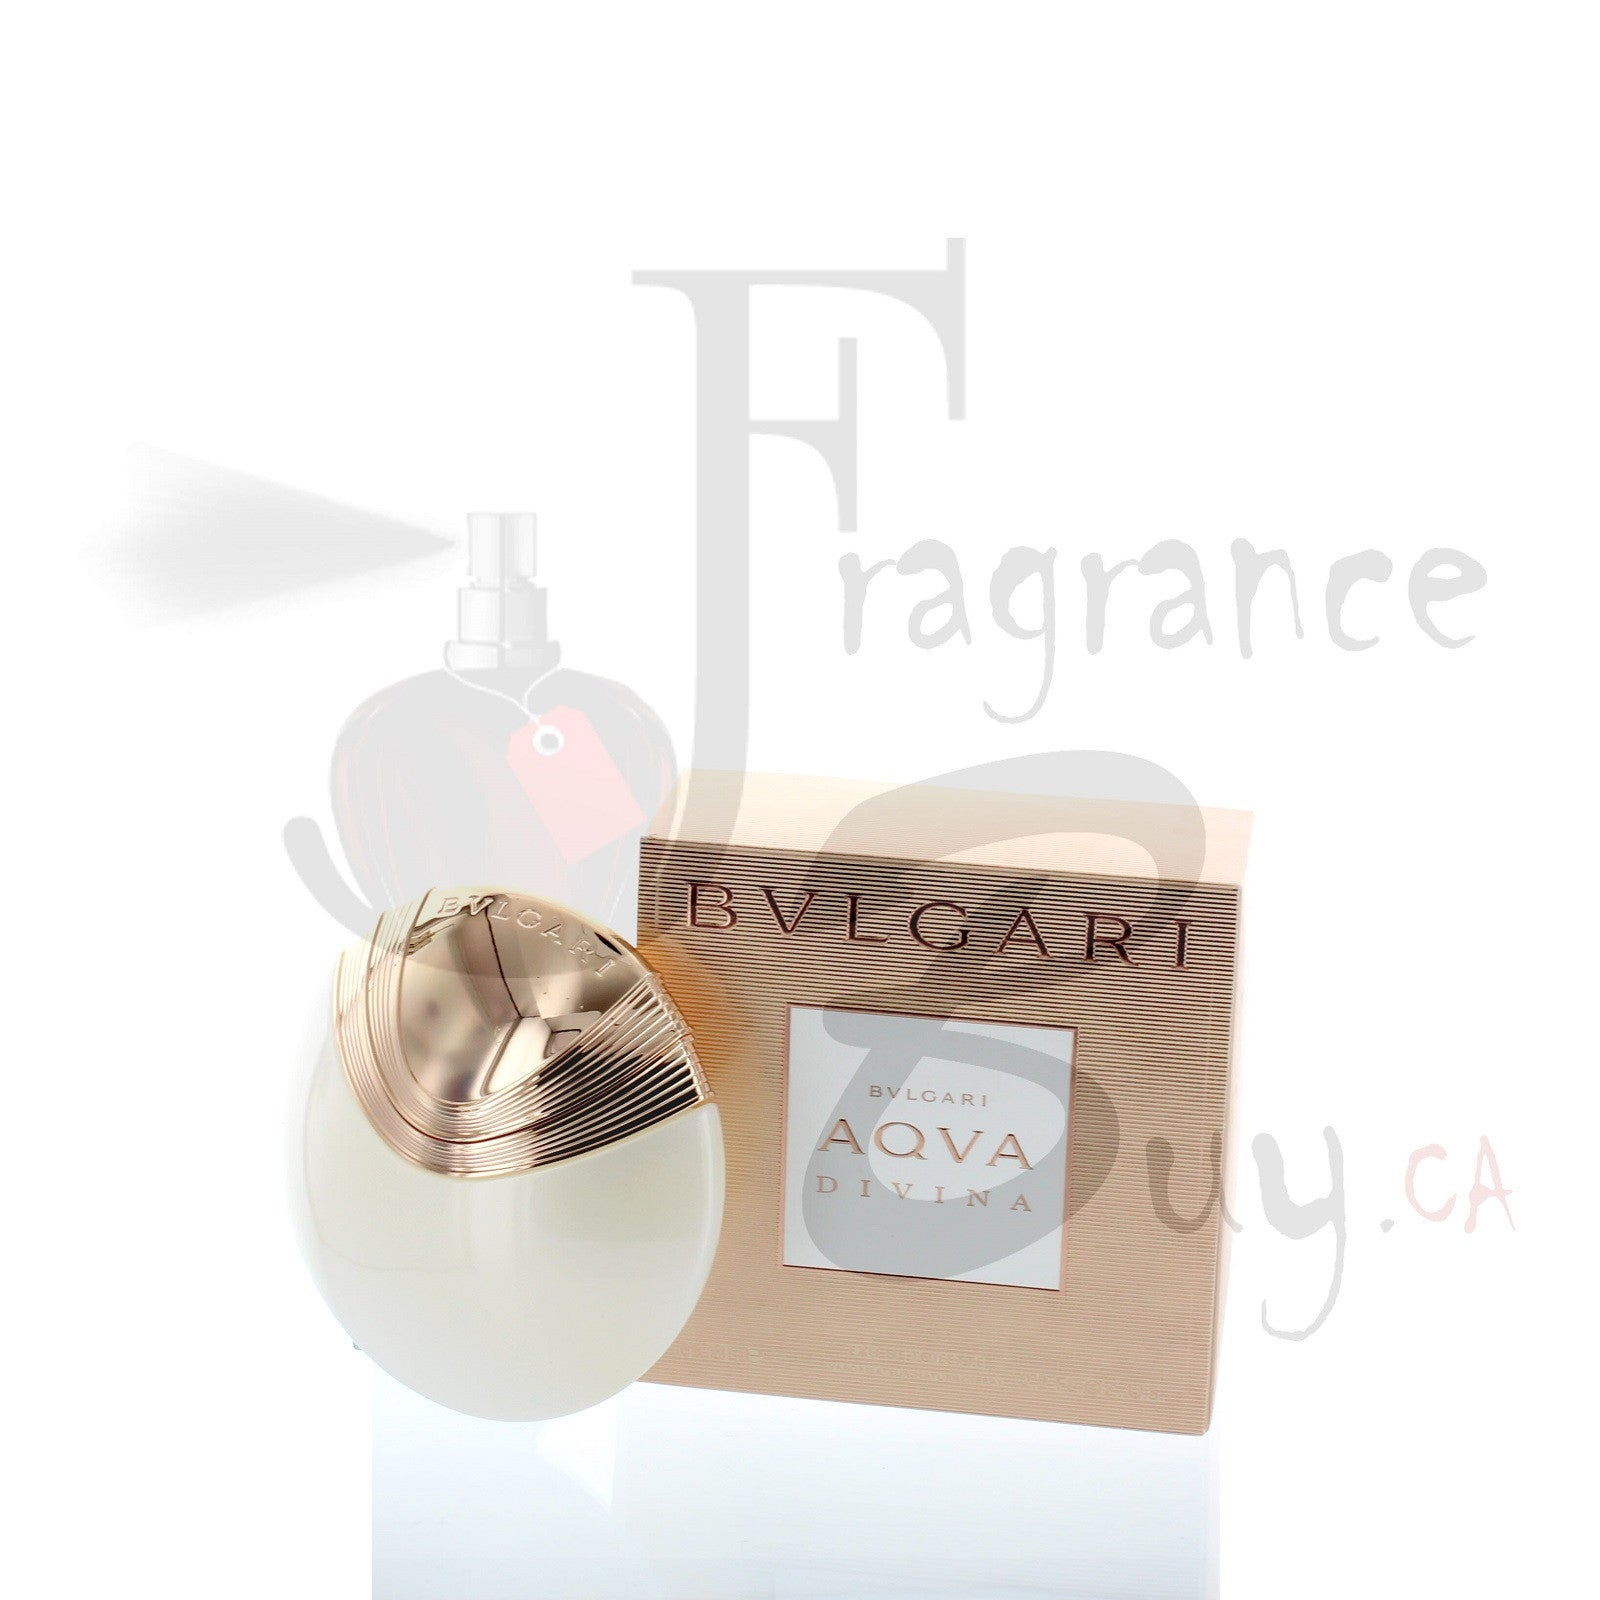 Bvlgari Aqua Divina For Woman